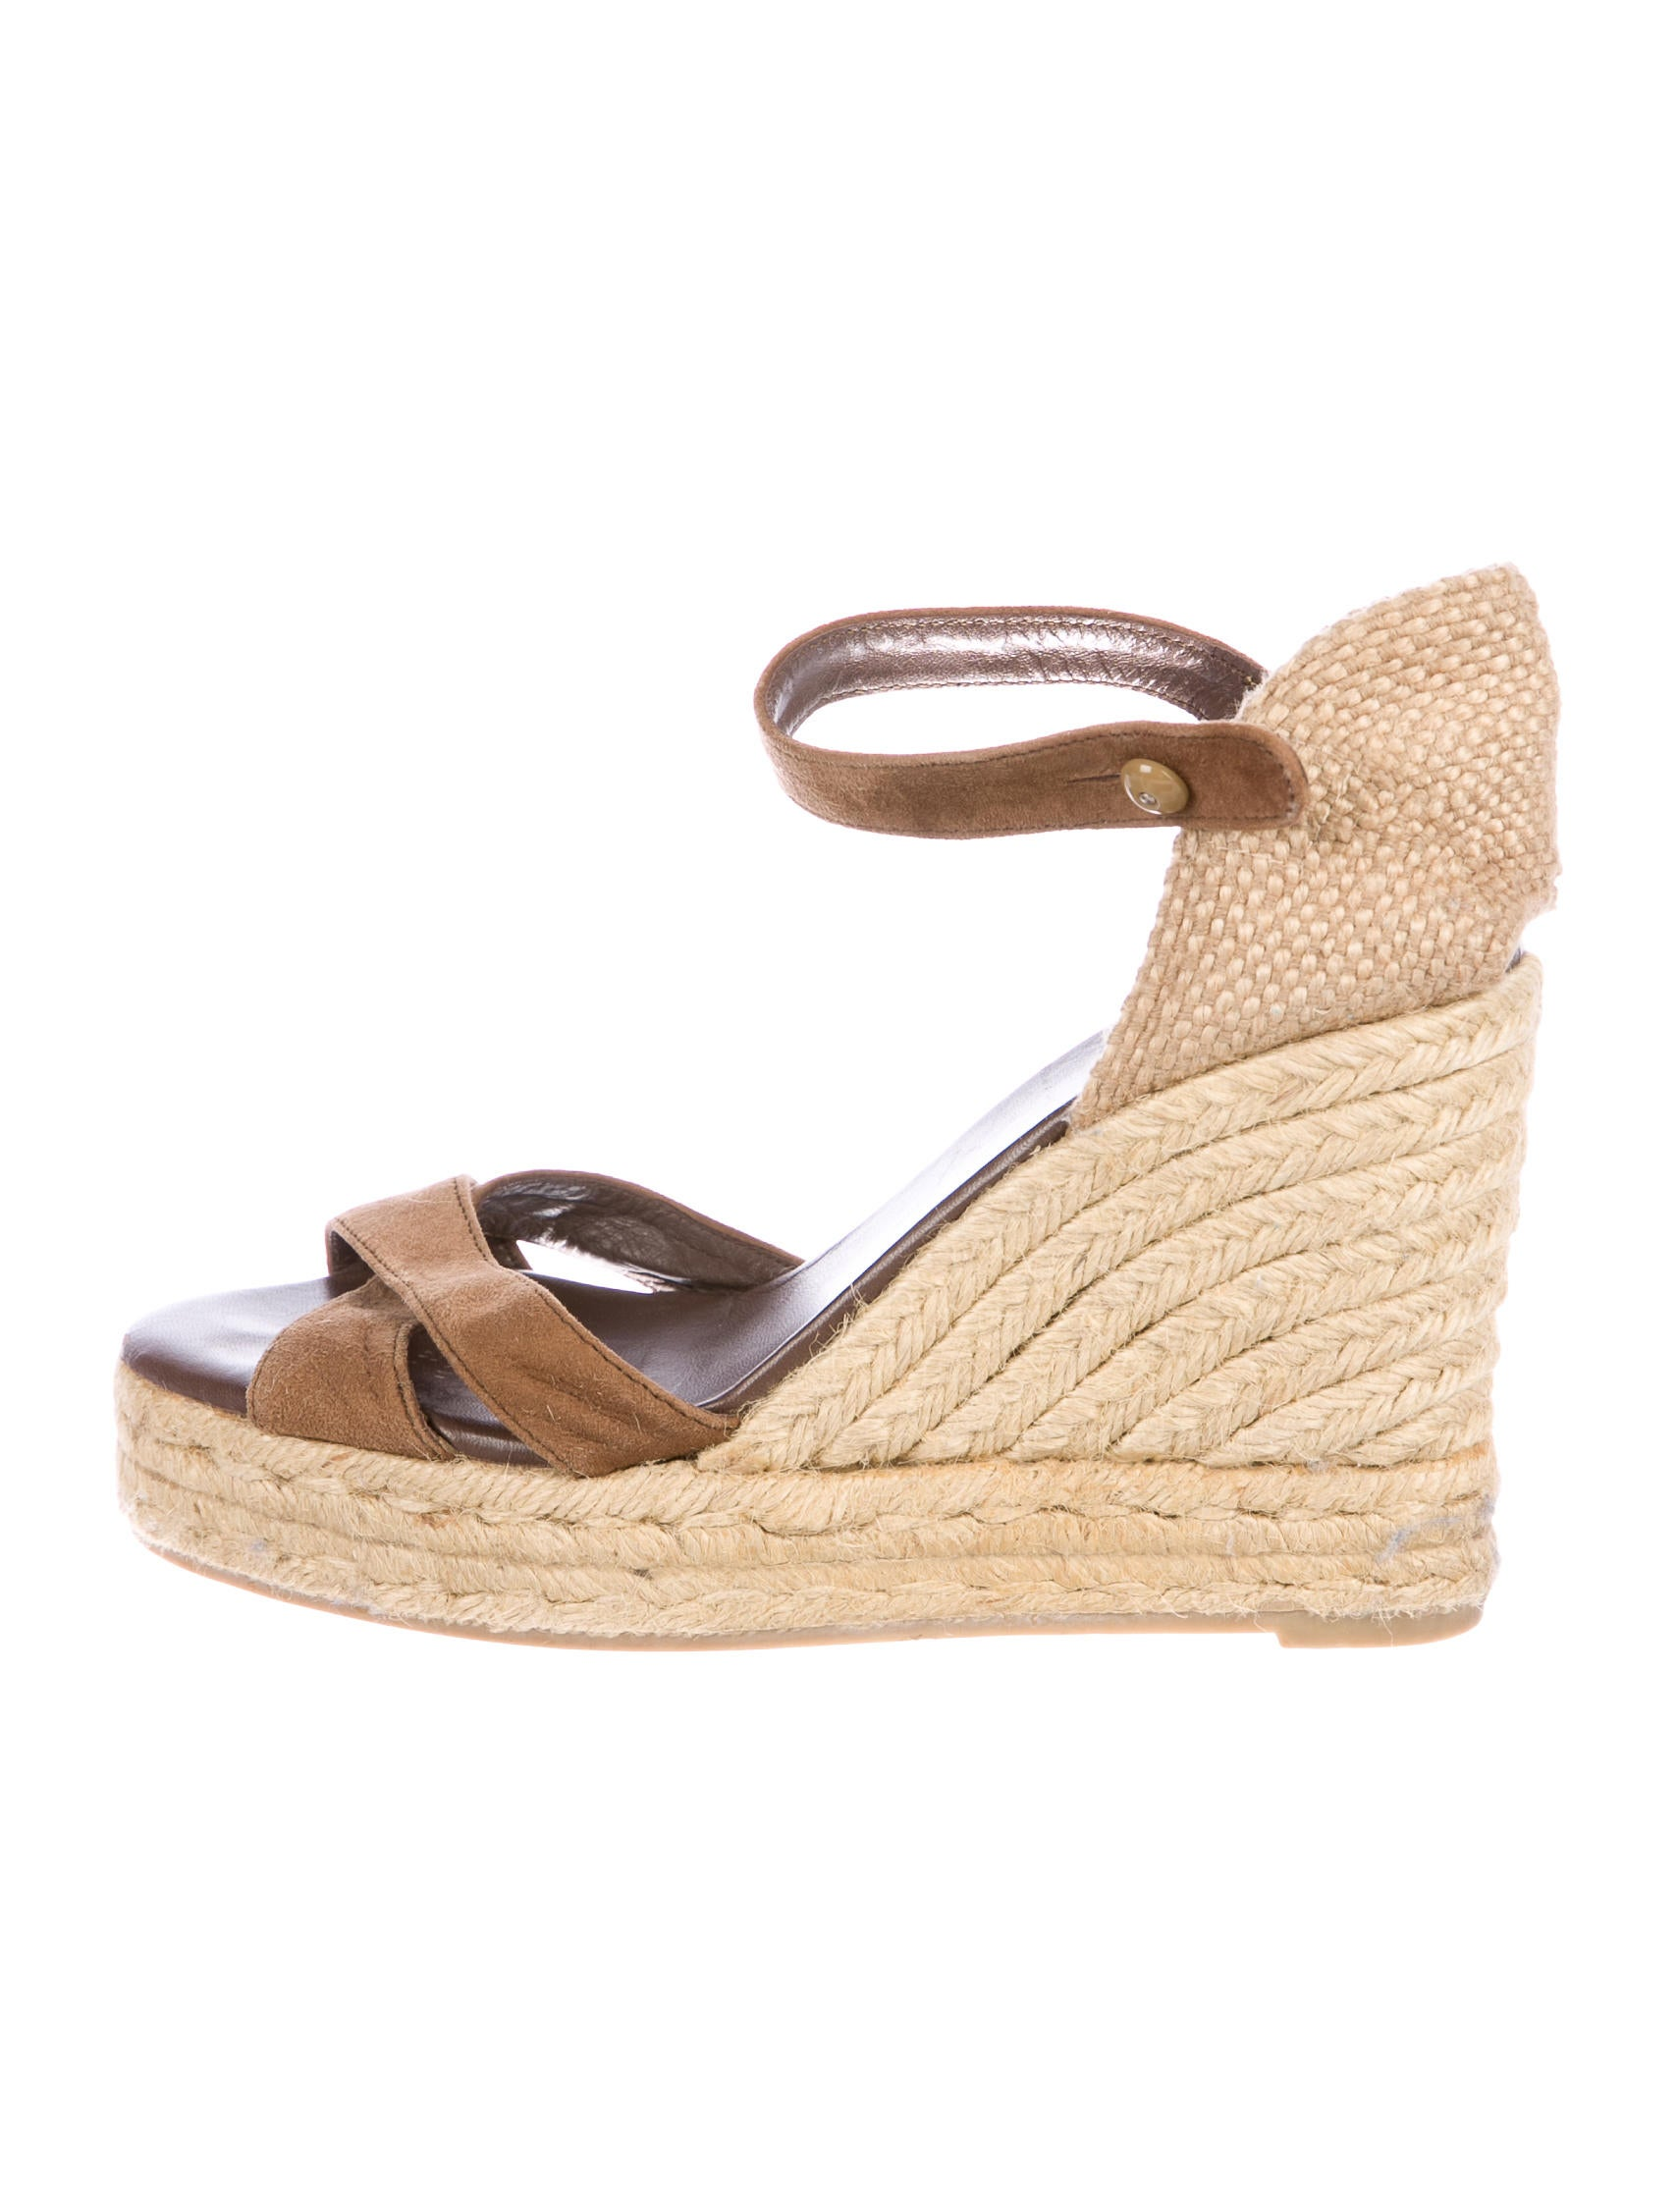 sale cheap prices sale prices Caytaner Belina Espadrille Wedge Sandals newest online 3tjr9BS4F